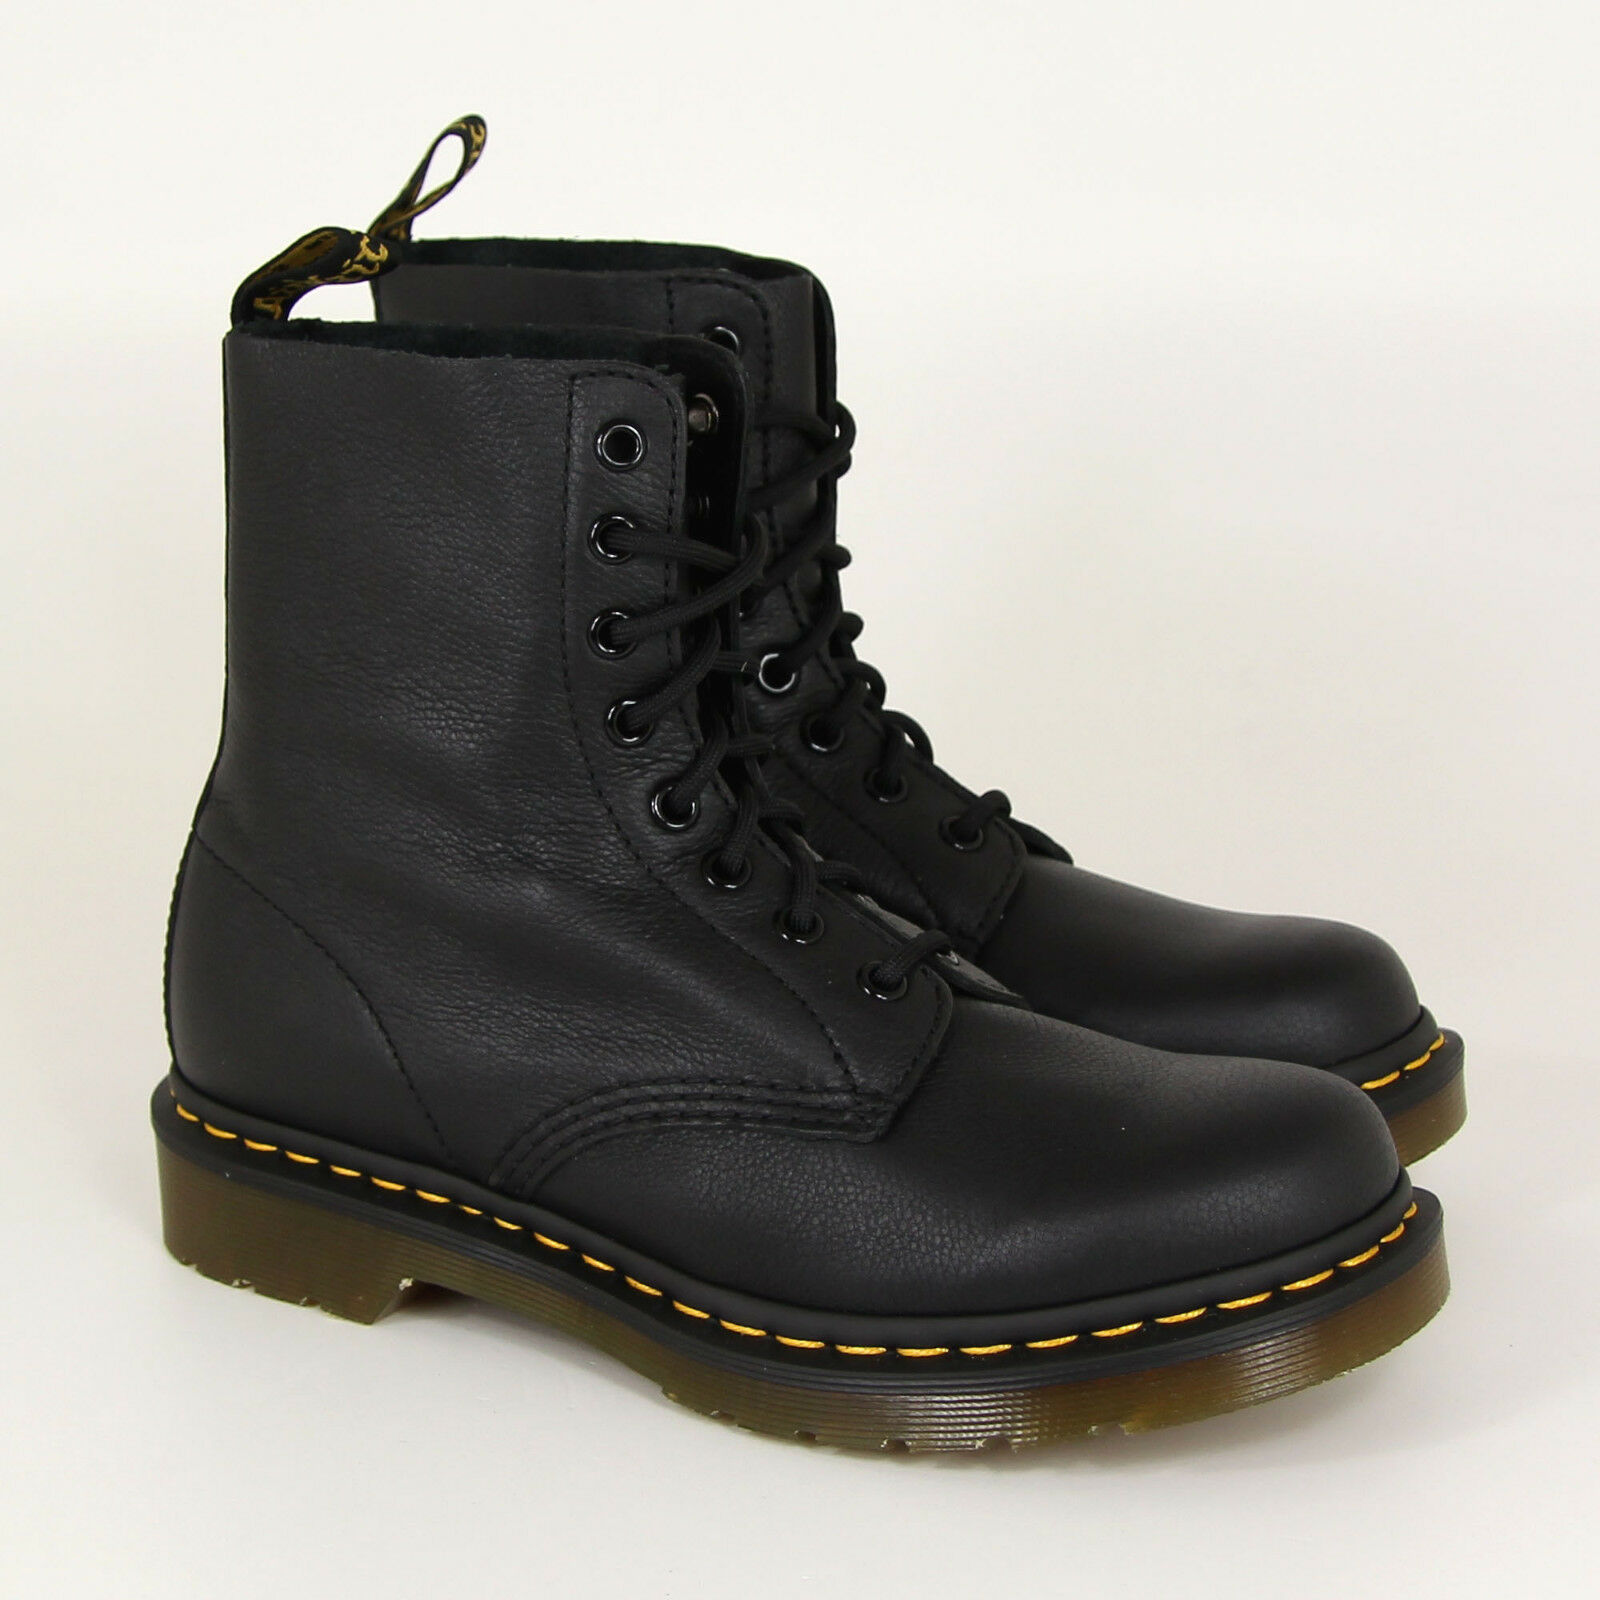 Dr.Martens Pascal, Black, Virginia, AIR 13512006, 8 fori, pelle, AIR Virginia, WAIR , NUOVO ba9911